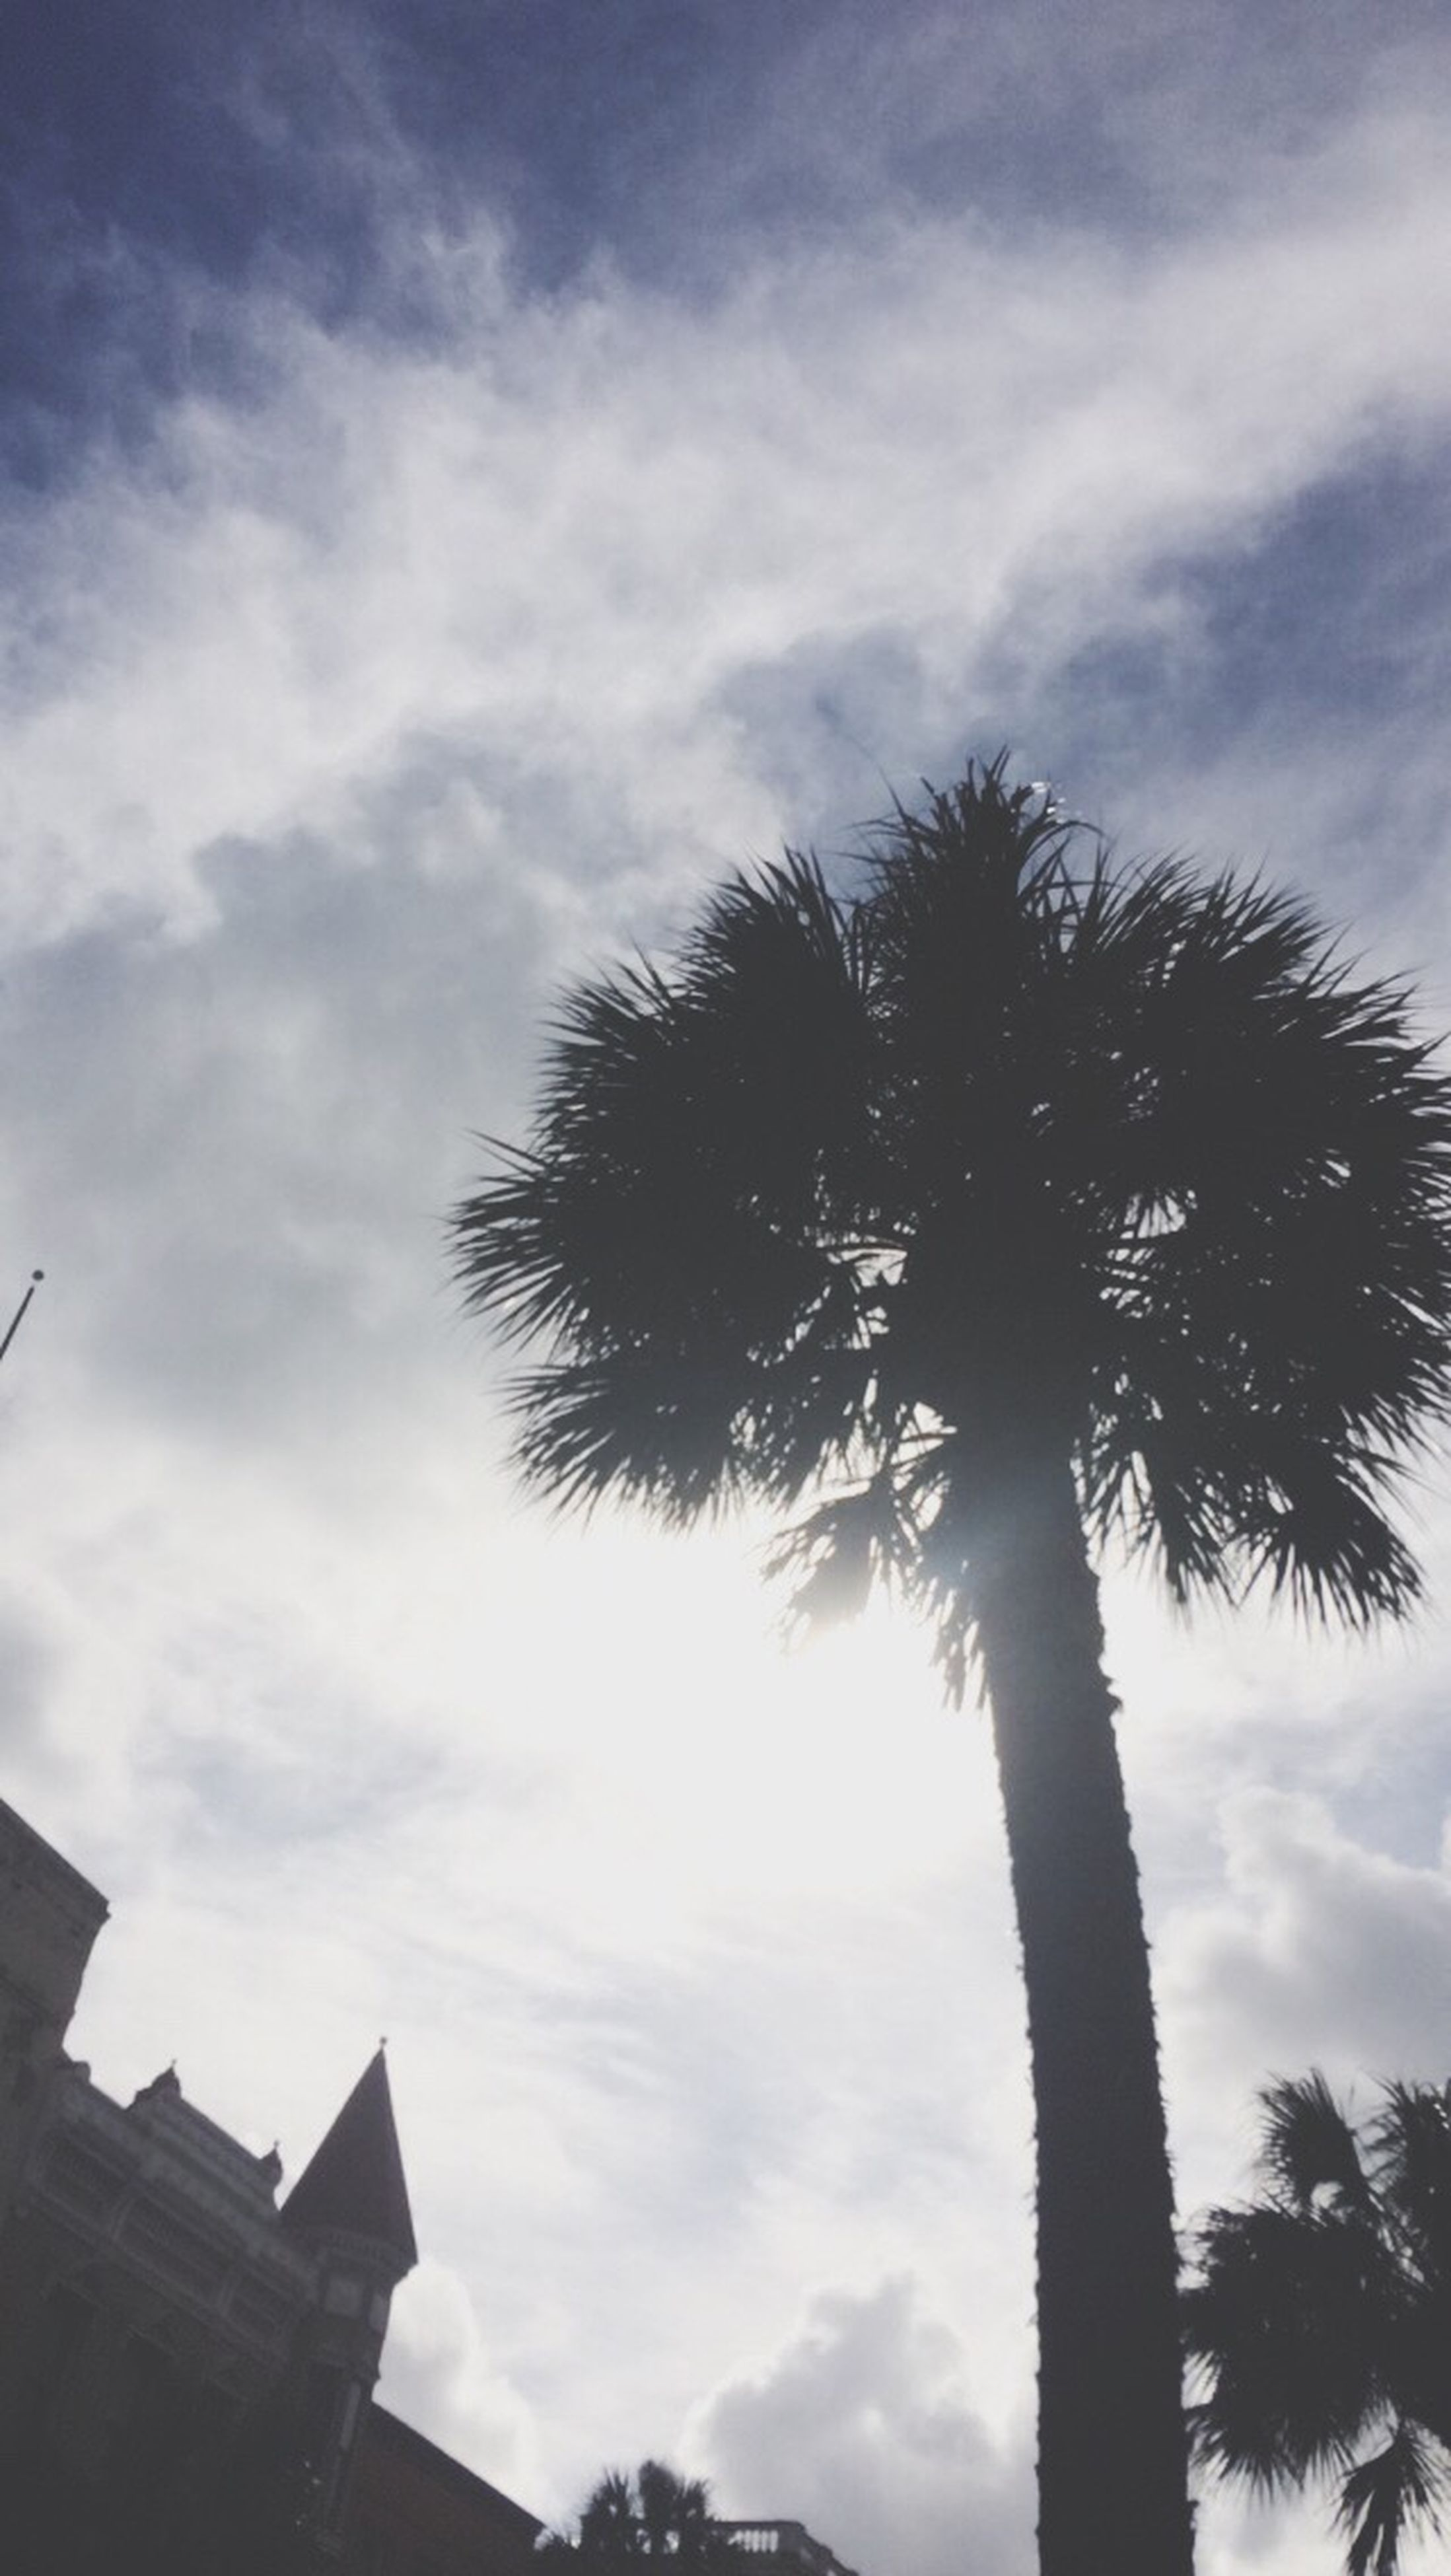 low angle view, tree, sky, palm tree, silhouette, cloud - sky, built structure, architecture, building exterior, cloudy, cloud, growth, branch, tree trunk, nature, outdoors, no people, tall - high, day, high section